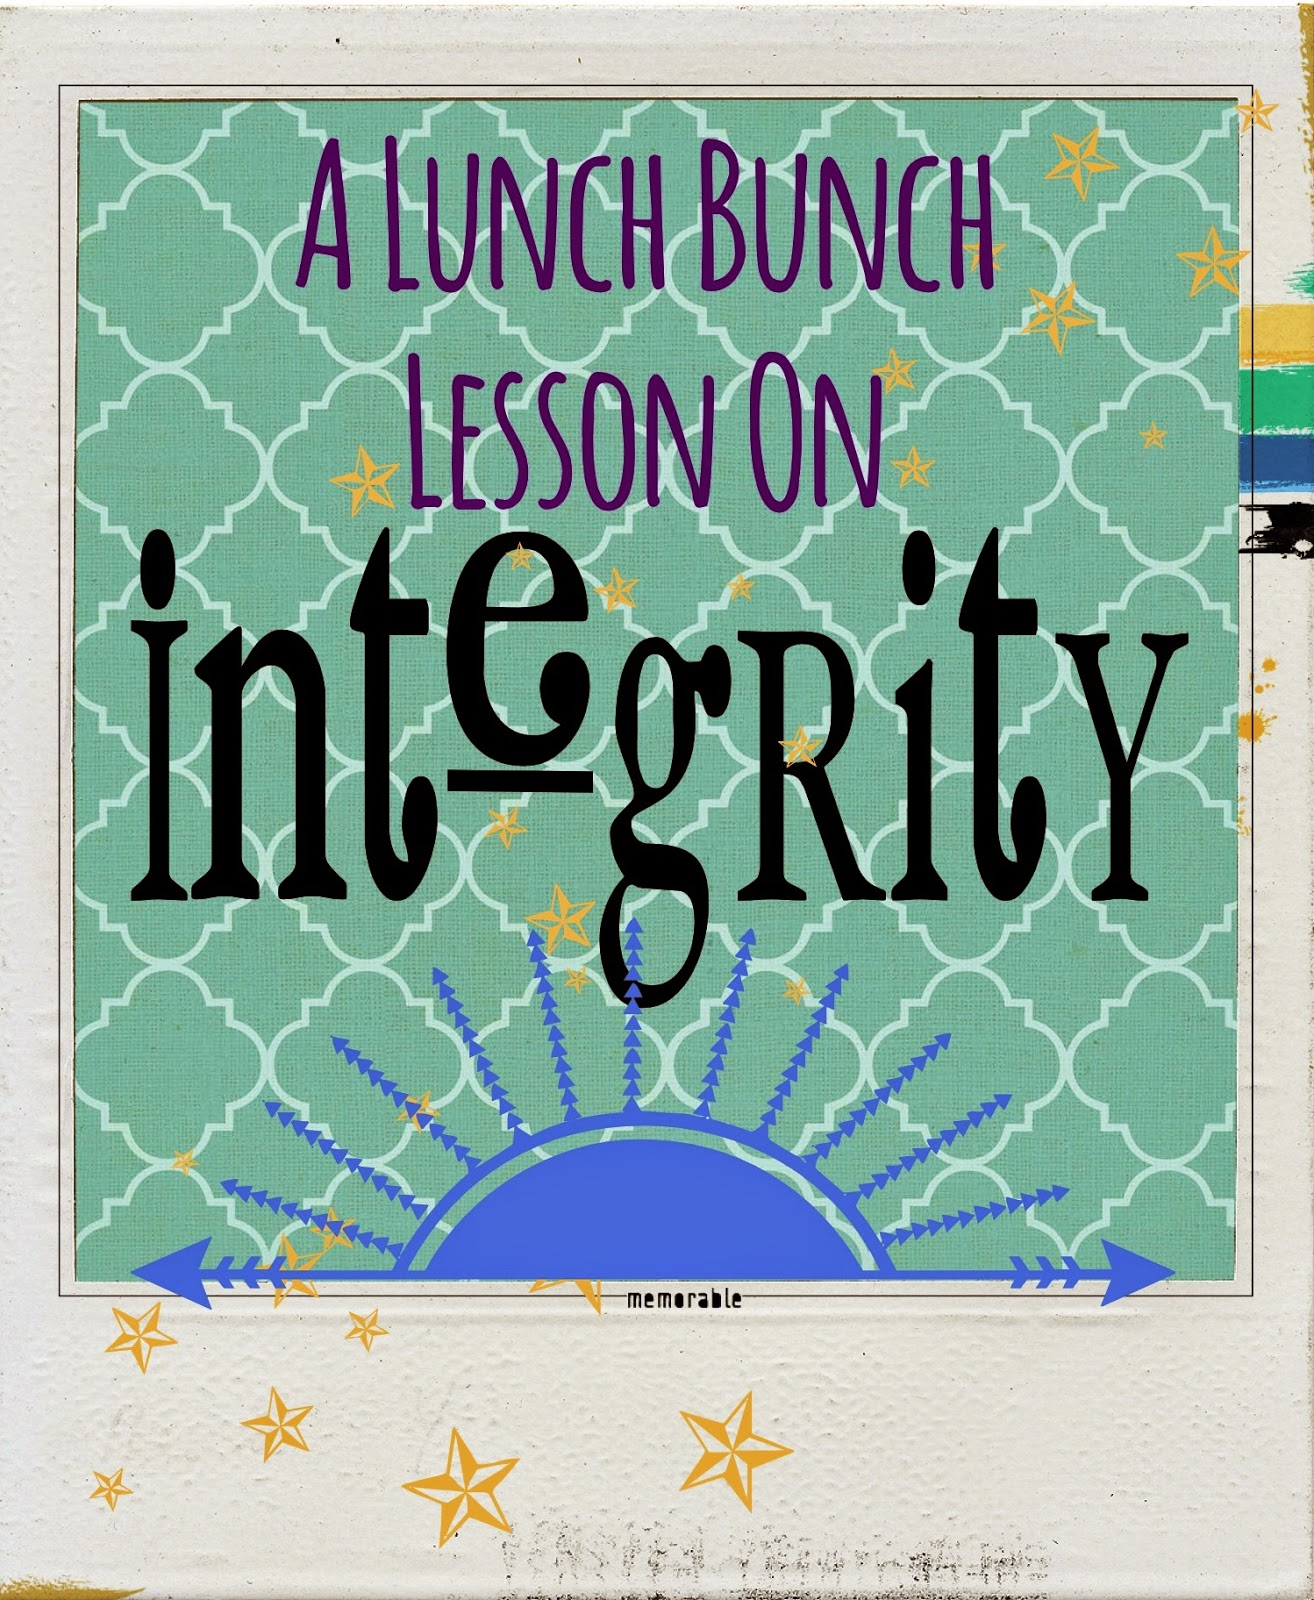 A Lunch Bunch Lesson On Integrity